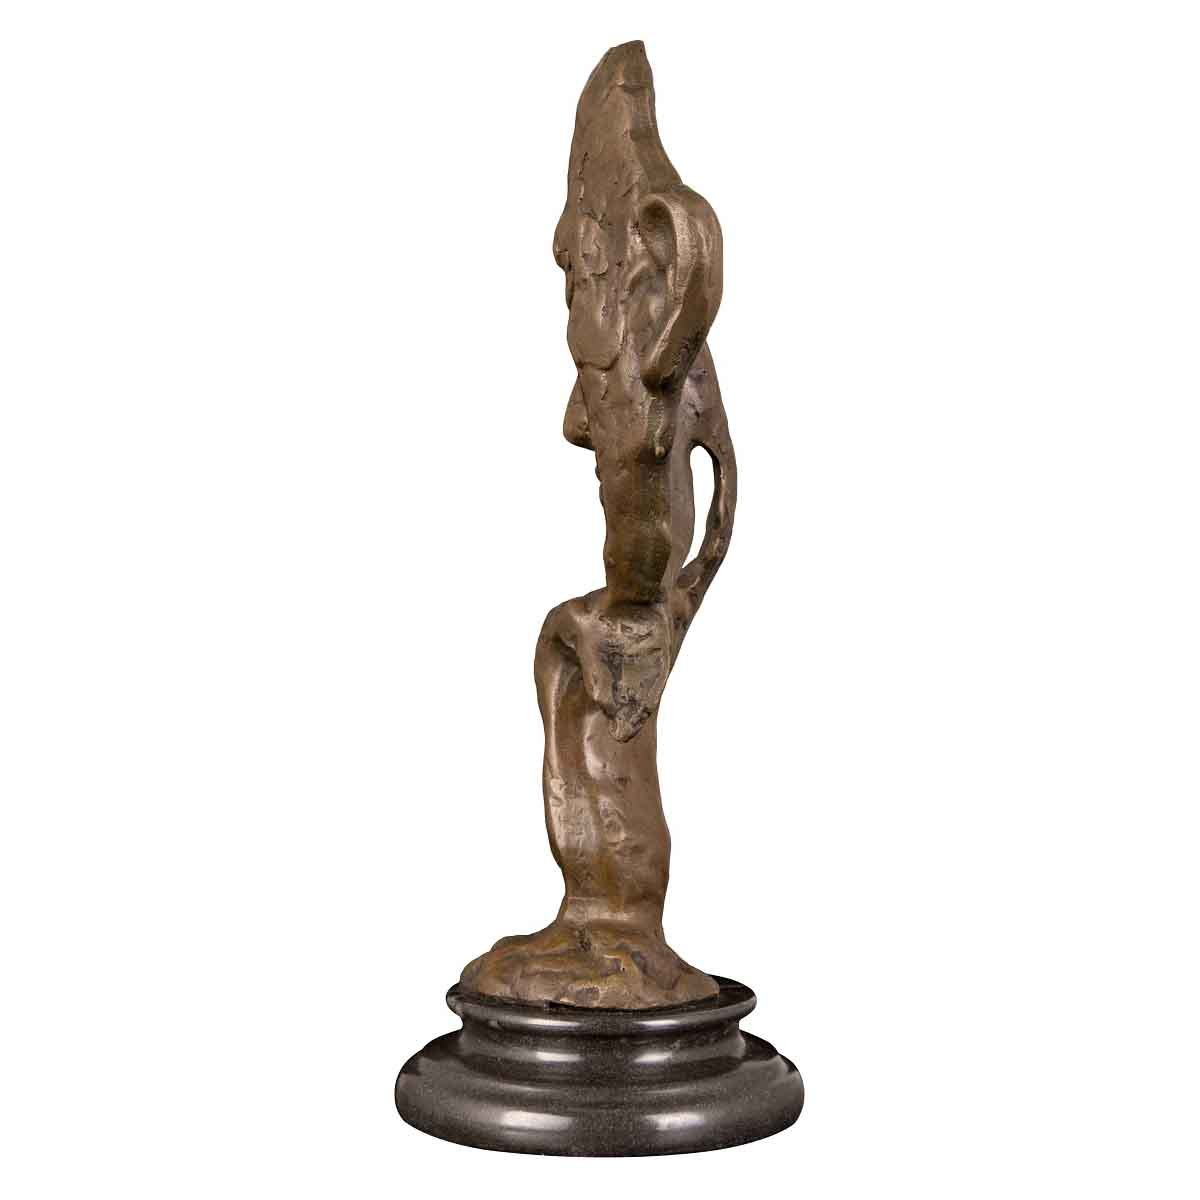 Abstract Modern Art Model Woman Figurine By Dali Decor Bronze Sculpture Statue Durable In Use Art